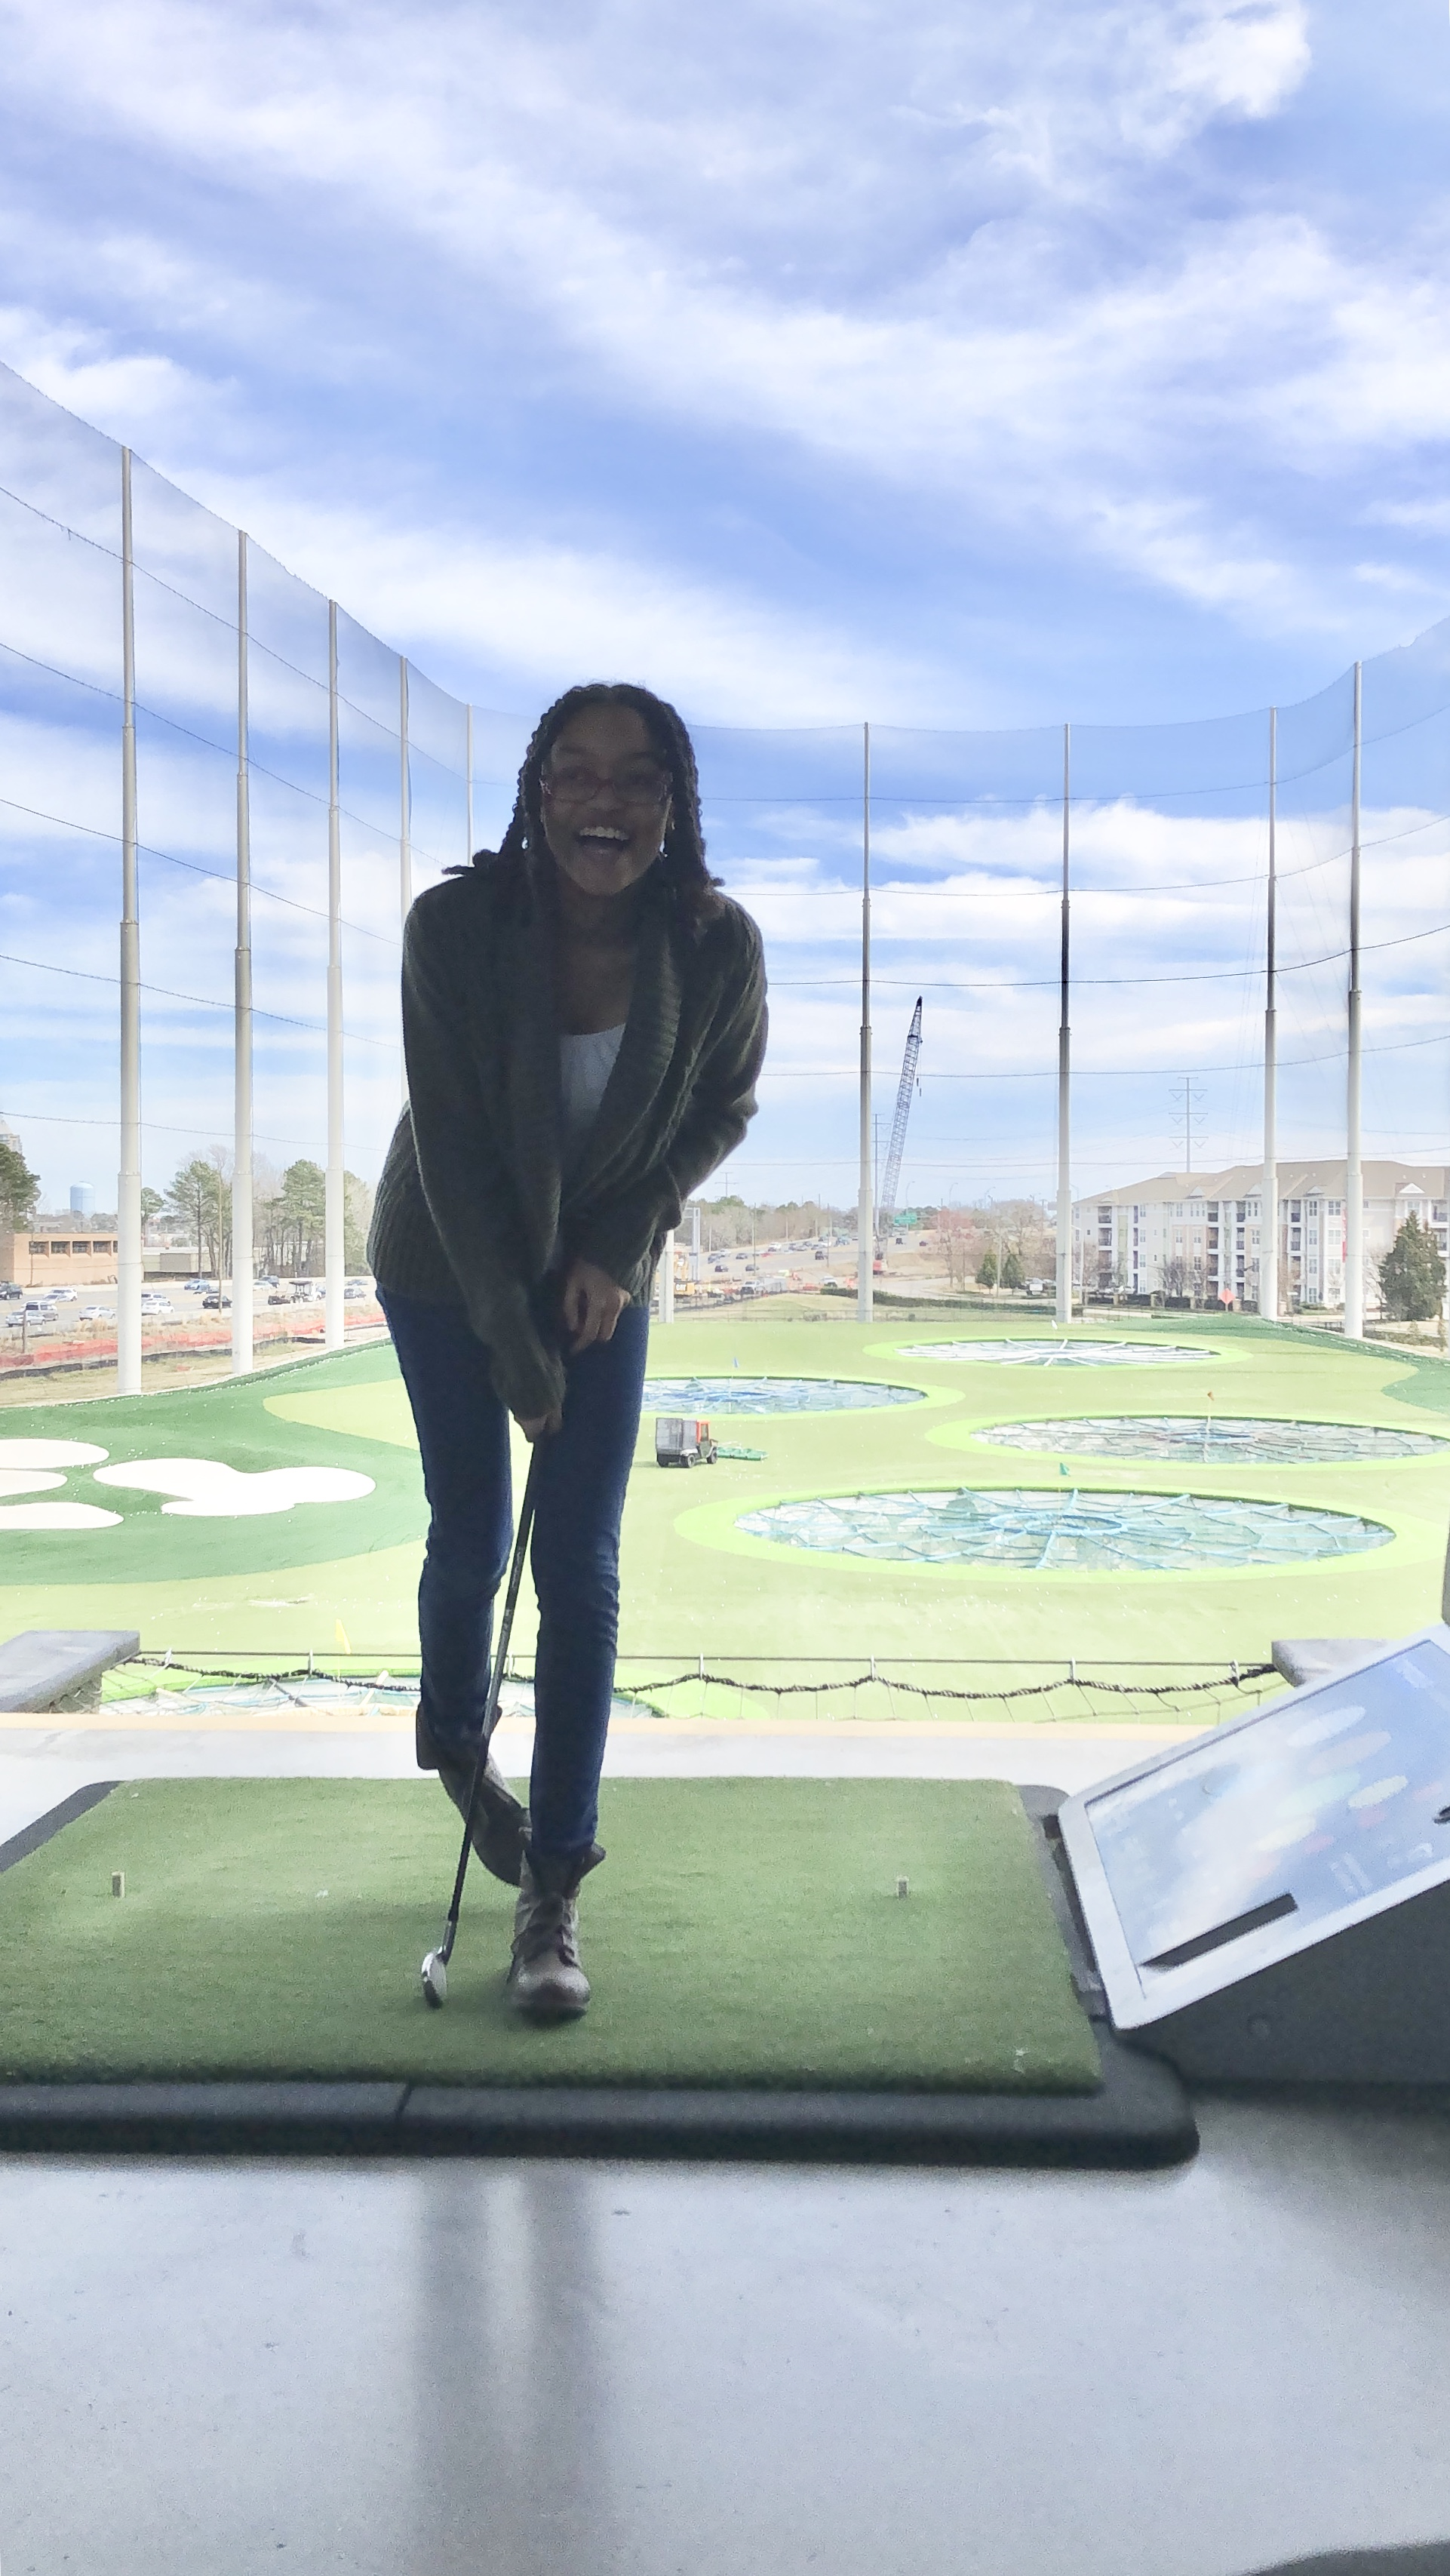 FAMILIES ARE WINNERS WITH AN FUN GOLF EXPERIENCE AT TOP GOLF